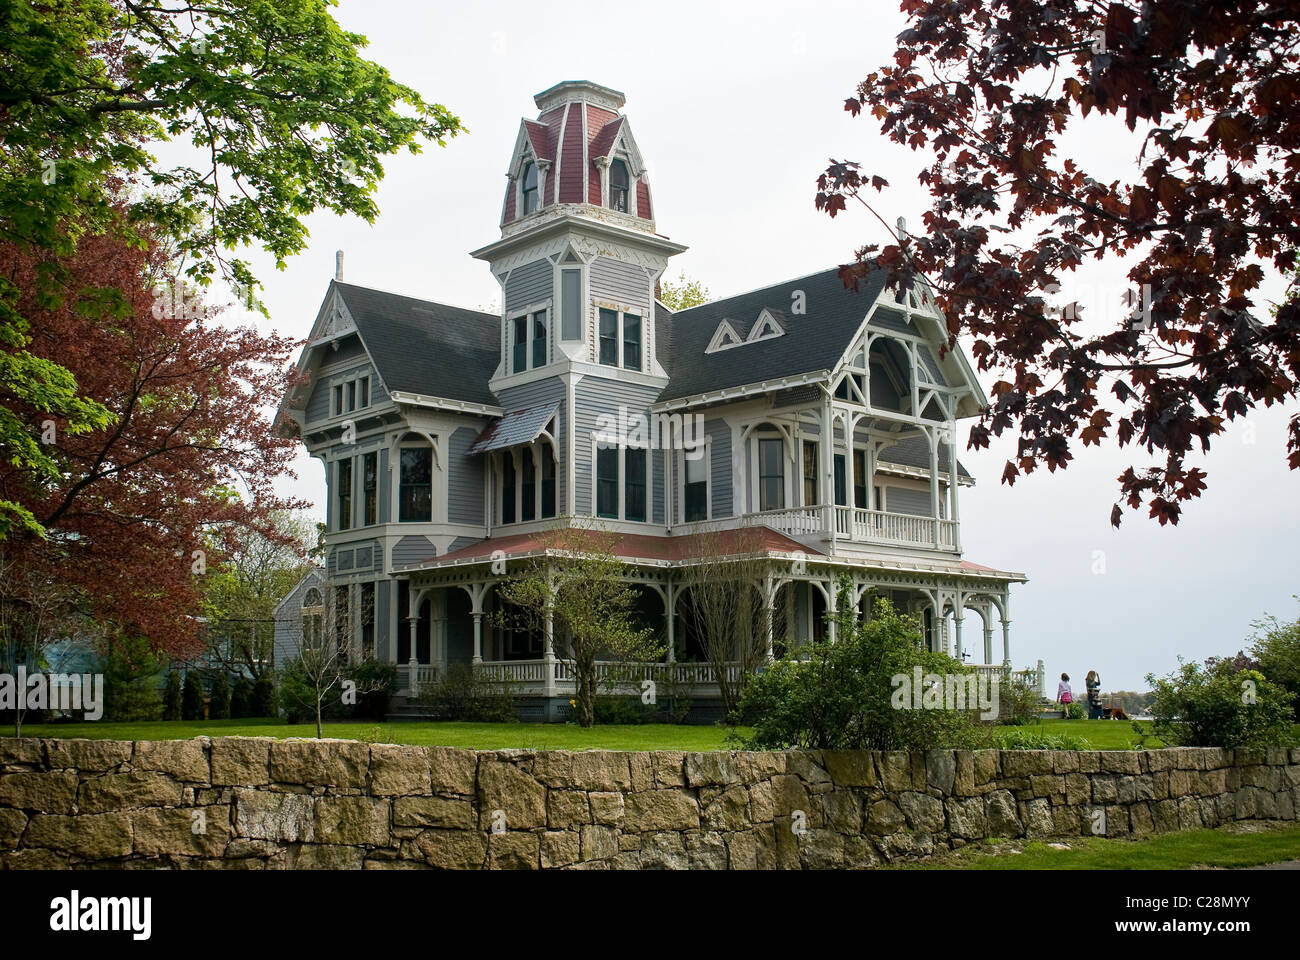 New HavenOld Gothic Victorian House Near The Thimble Islands Connecticut USA